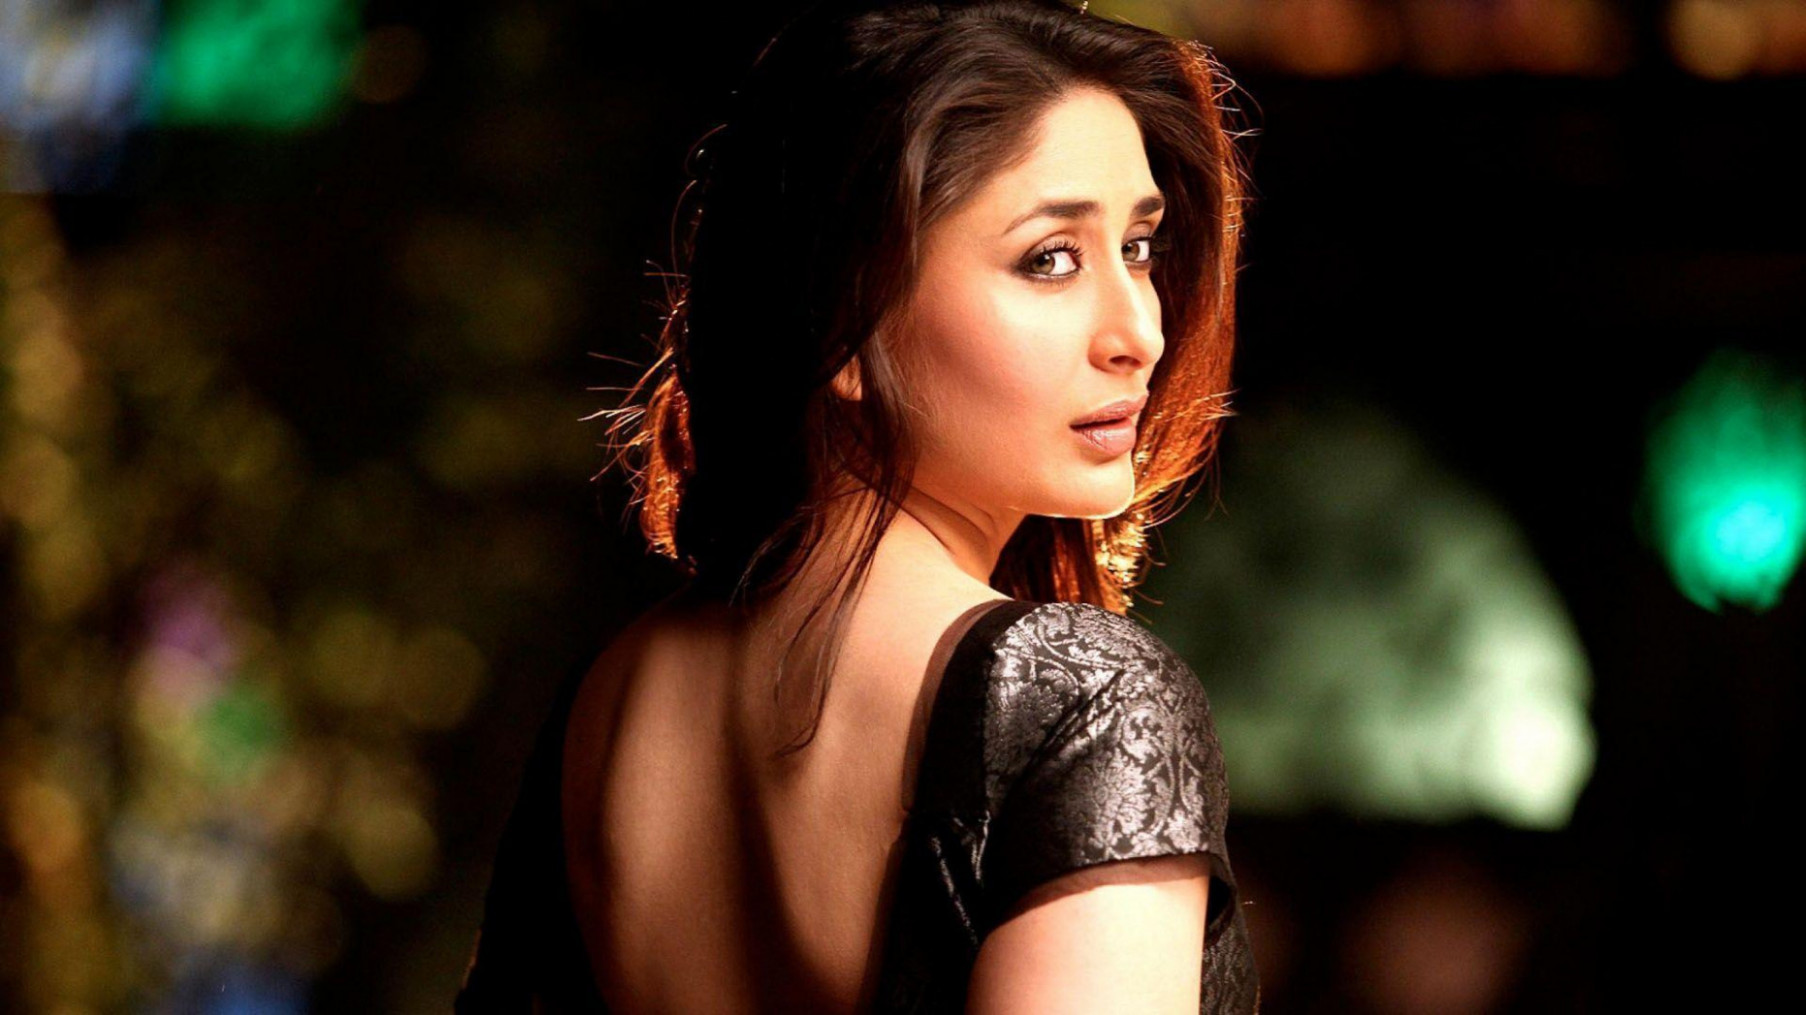 Full Hd Actress Wallpaper For Mobile Many HD Wallpaper - bollywood actress hd wallpapers for mobile